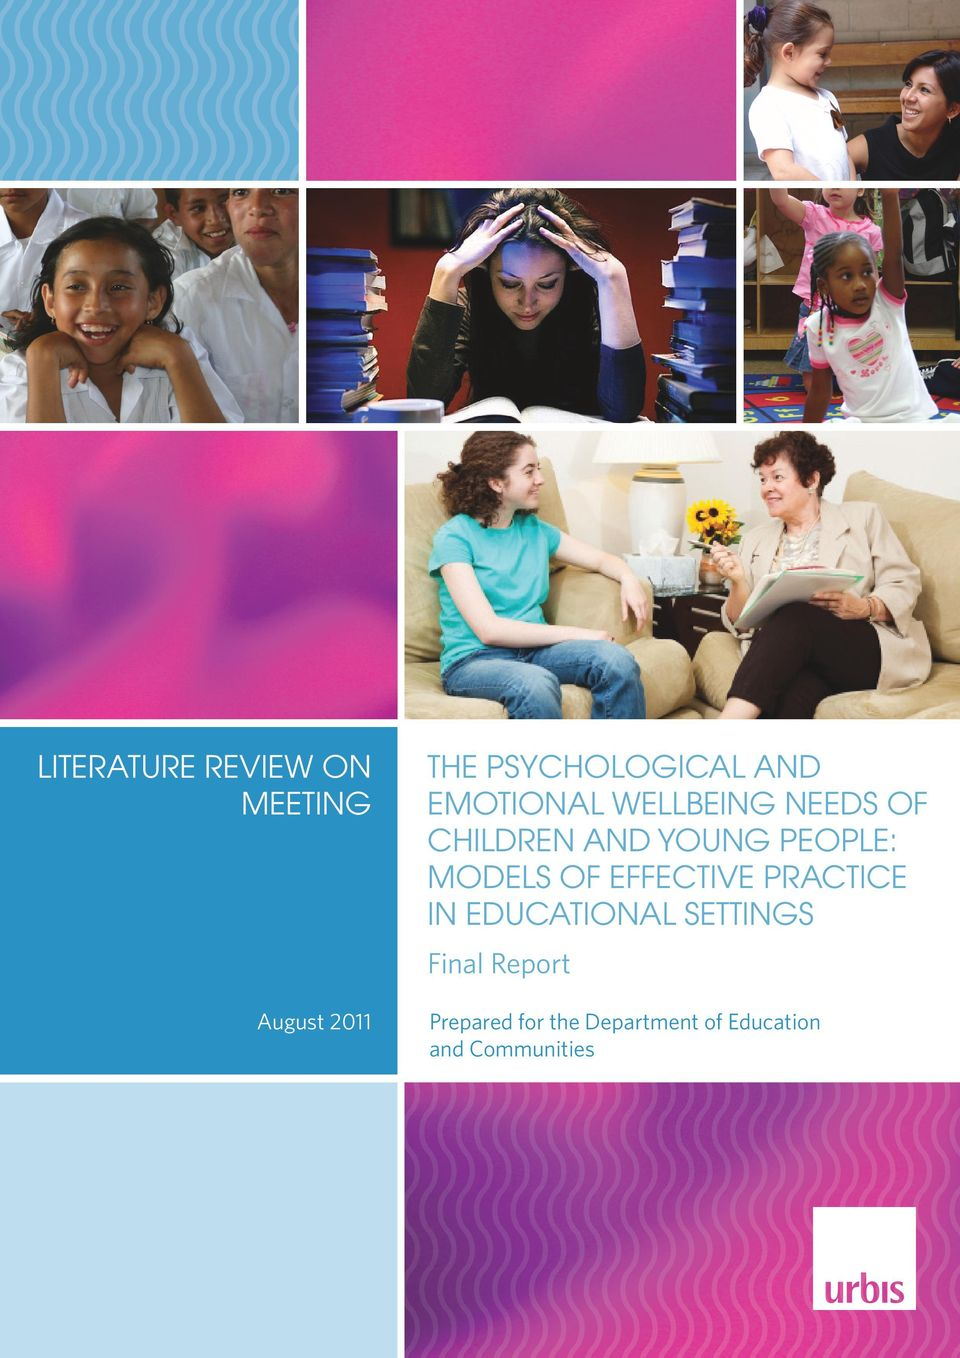 MODELS OF EFFECTIVE PRACTICE IN EDUCATIONAL SETTINGS Final